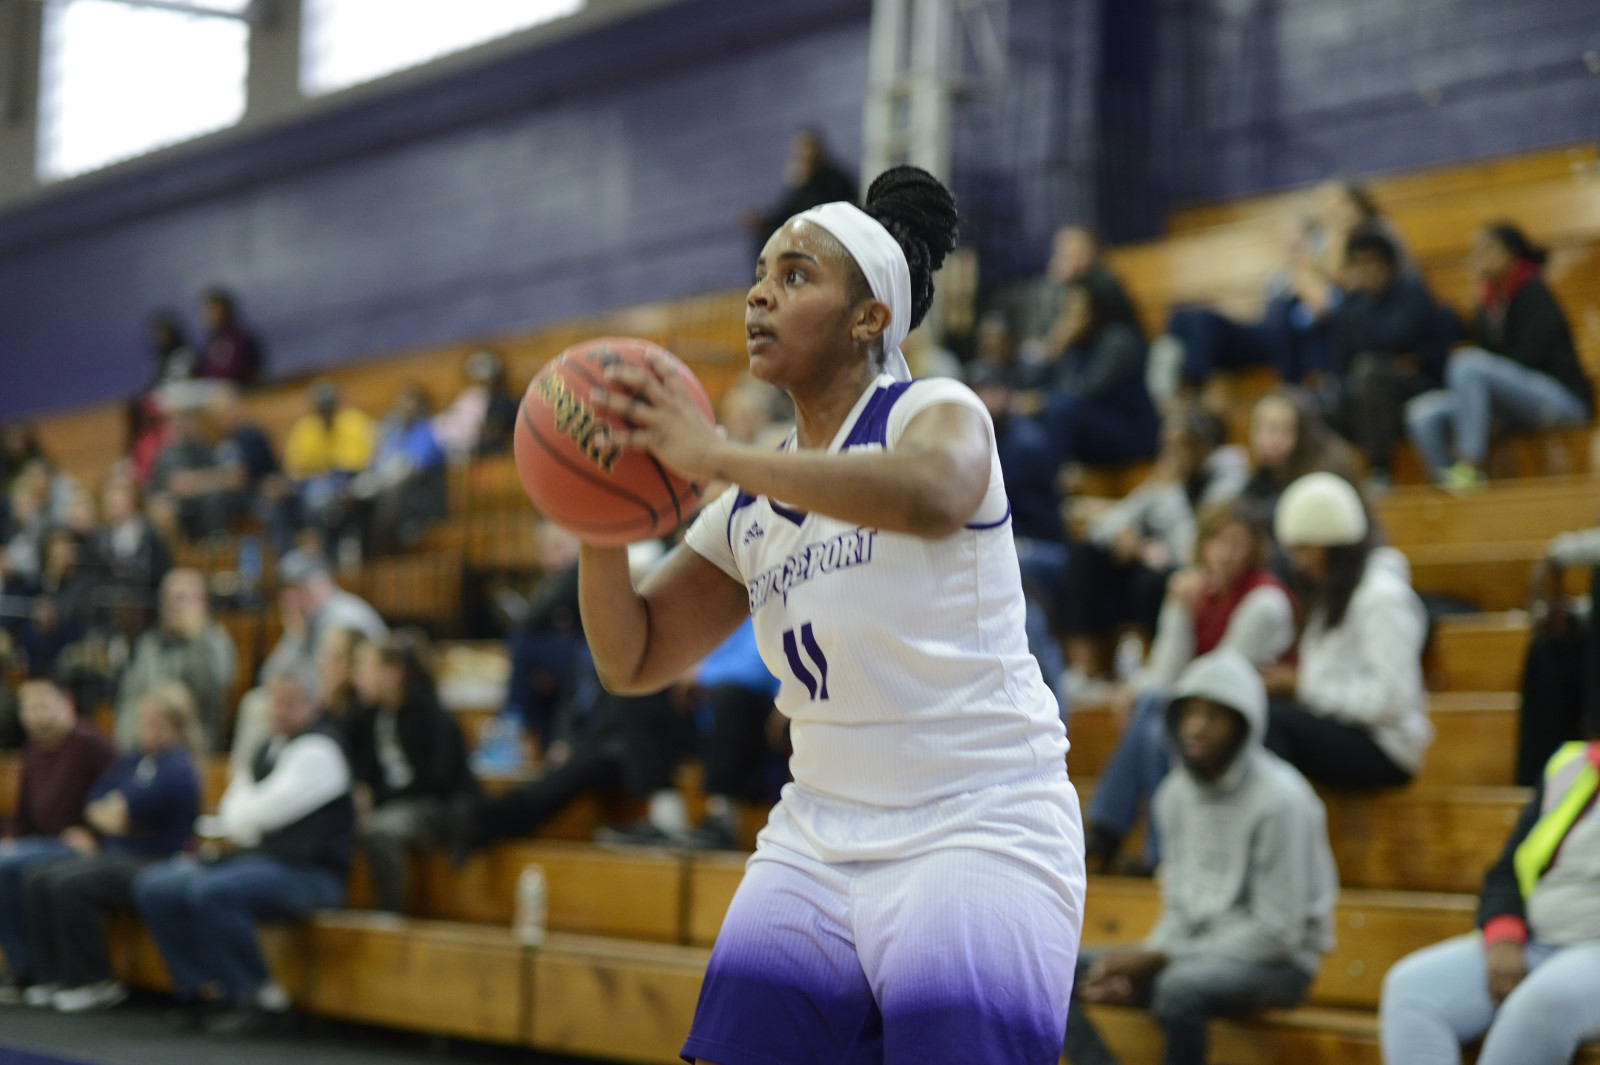 Women's Basketball Battles Buts Falls At Home By Three To ECC Leader St. Thomas Aquinas, 72-69